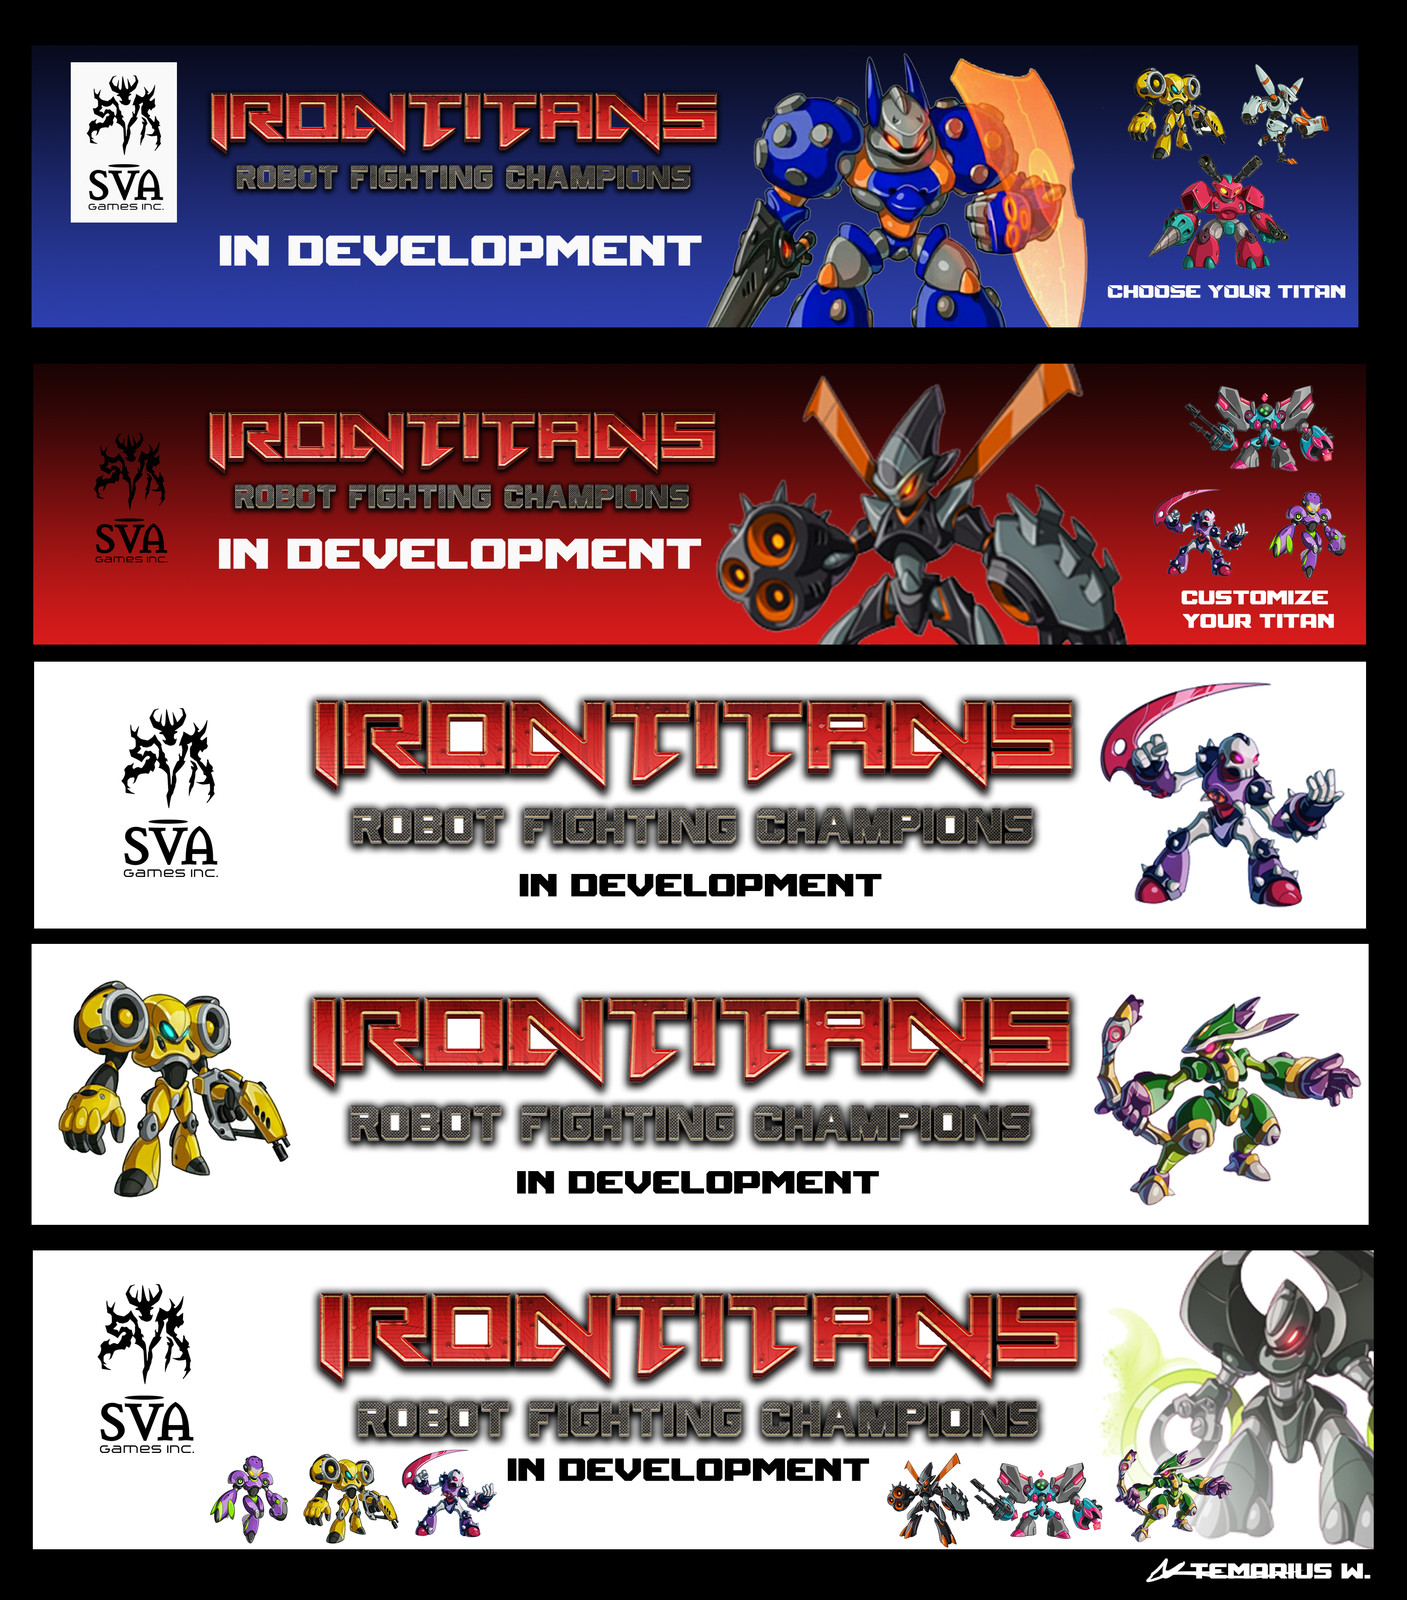 Iron Titans - Promotional Banner